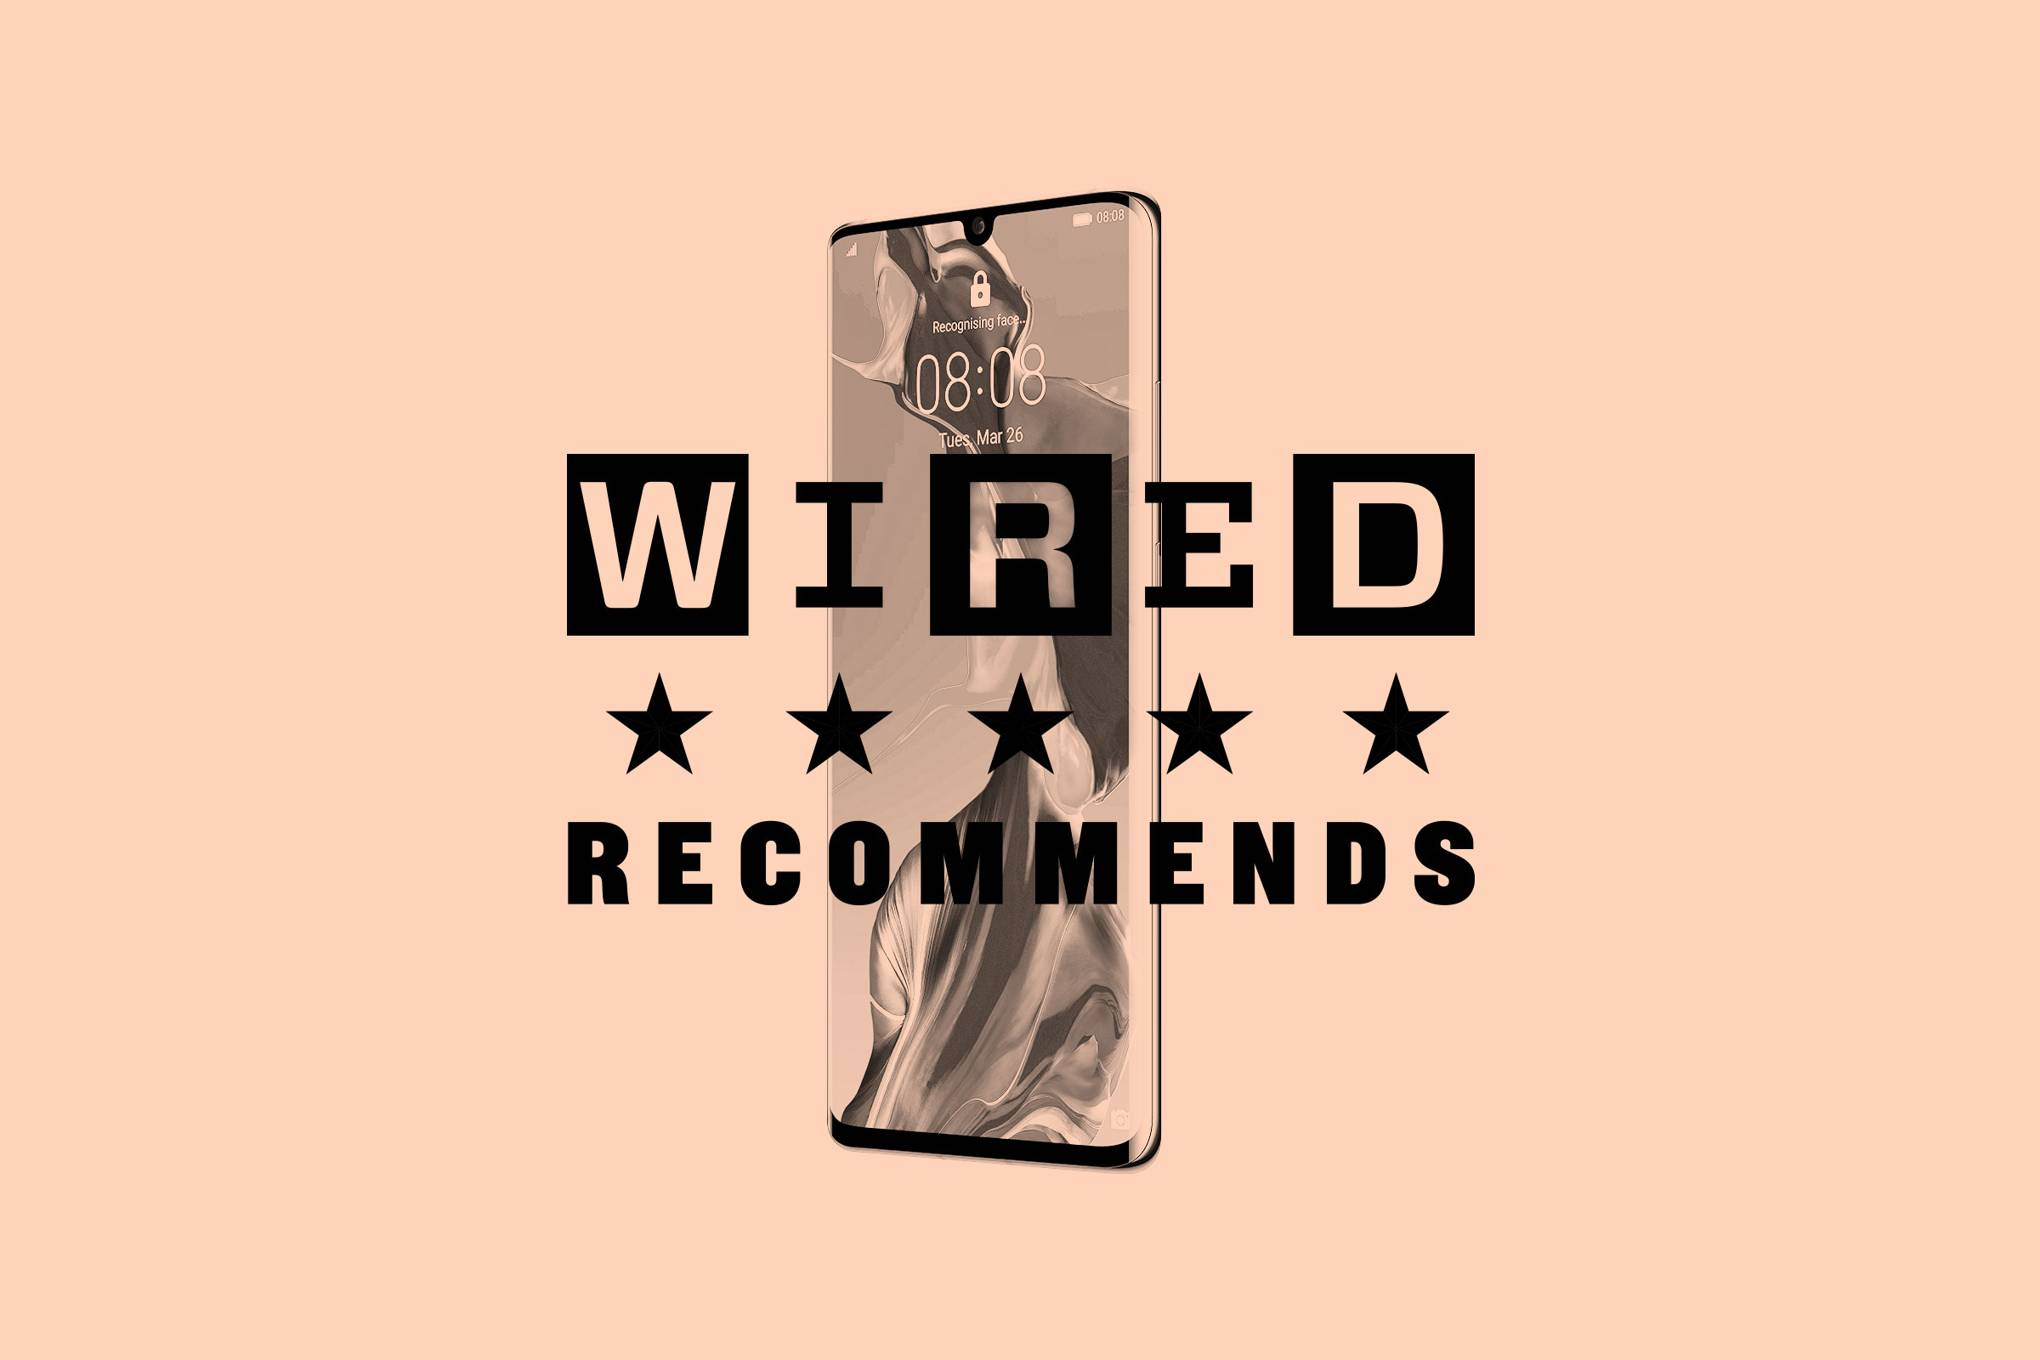 Best Smartphone 2019: WIRED Recommends the best phones | WIRED UK